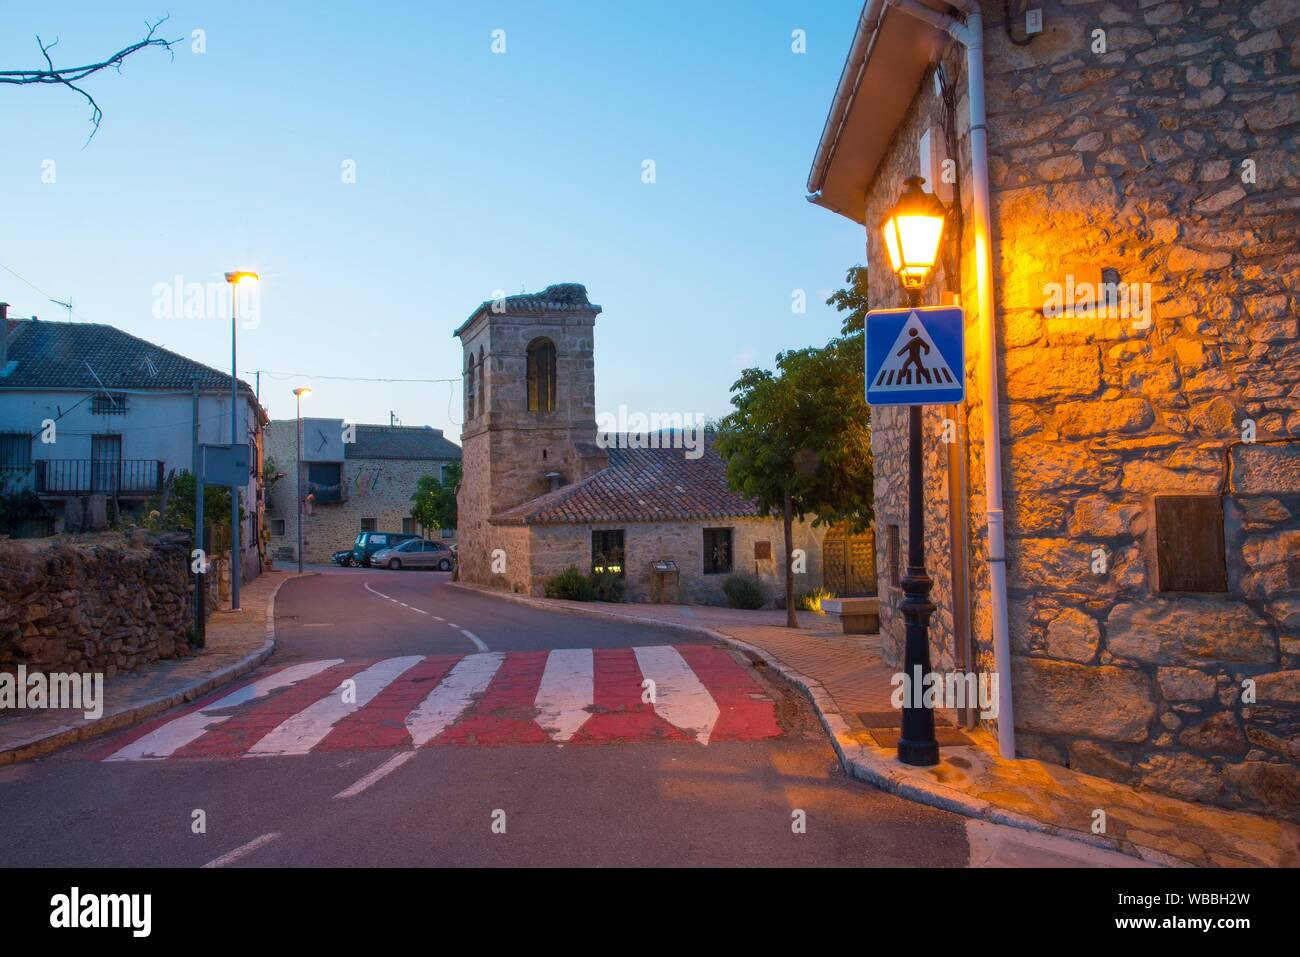 Street and church, night view. Piñuecar, Madrid province, Spain. Stock Photo